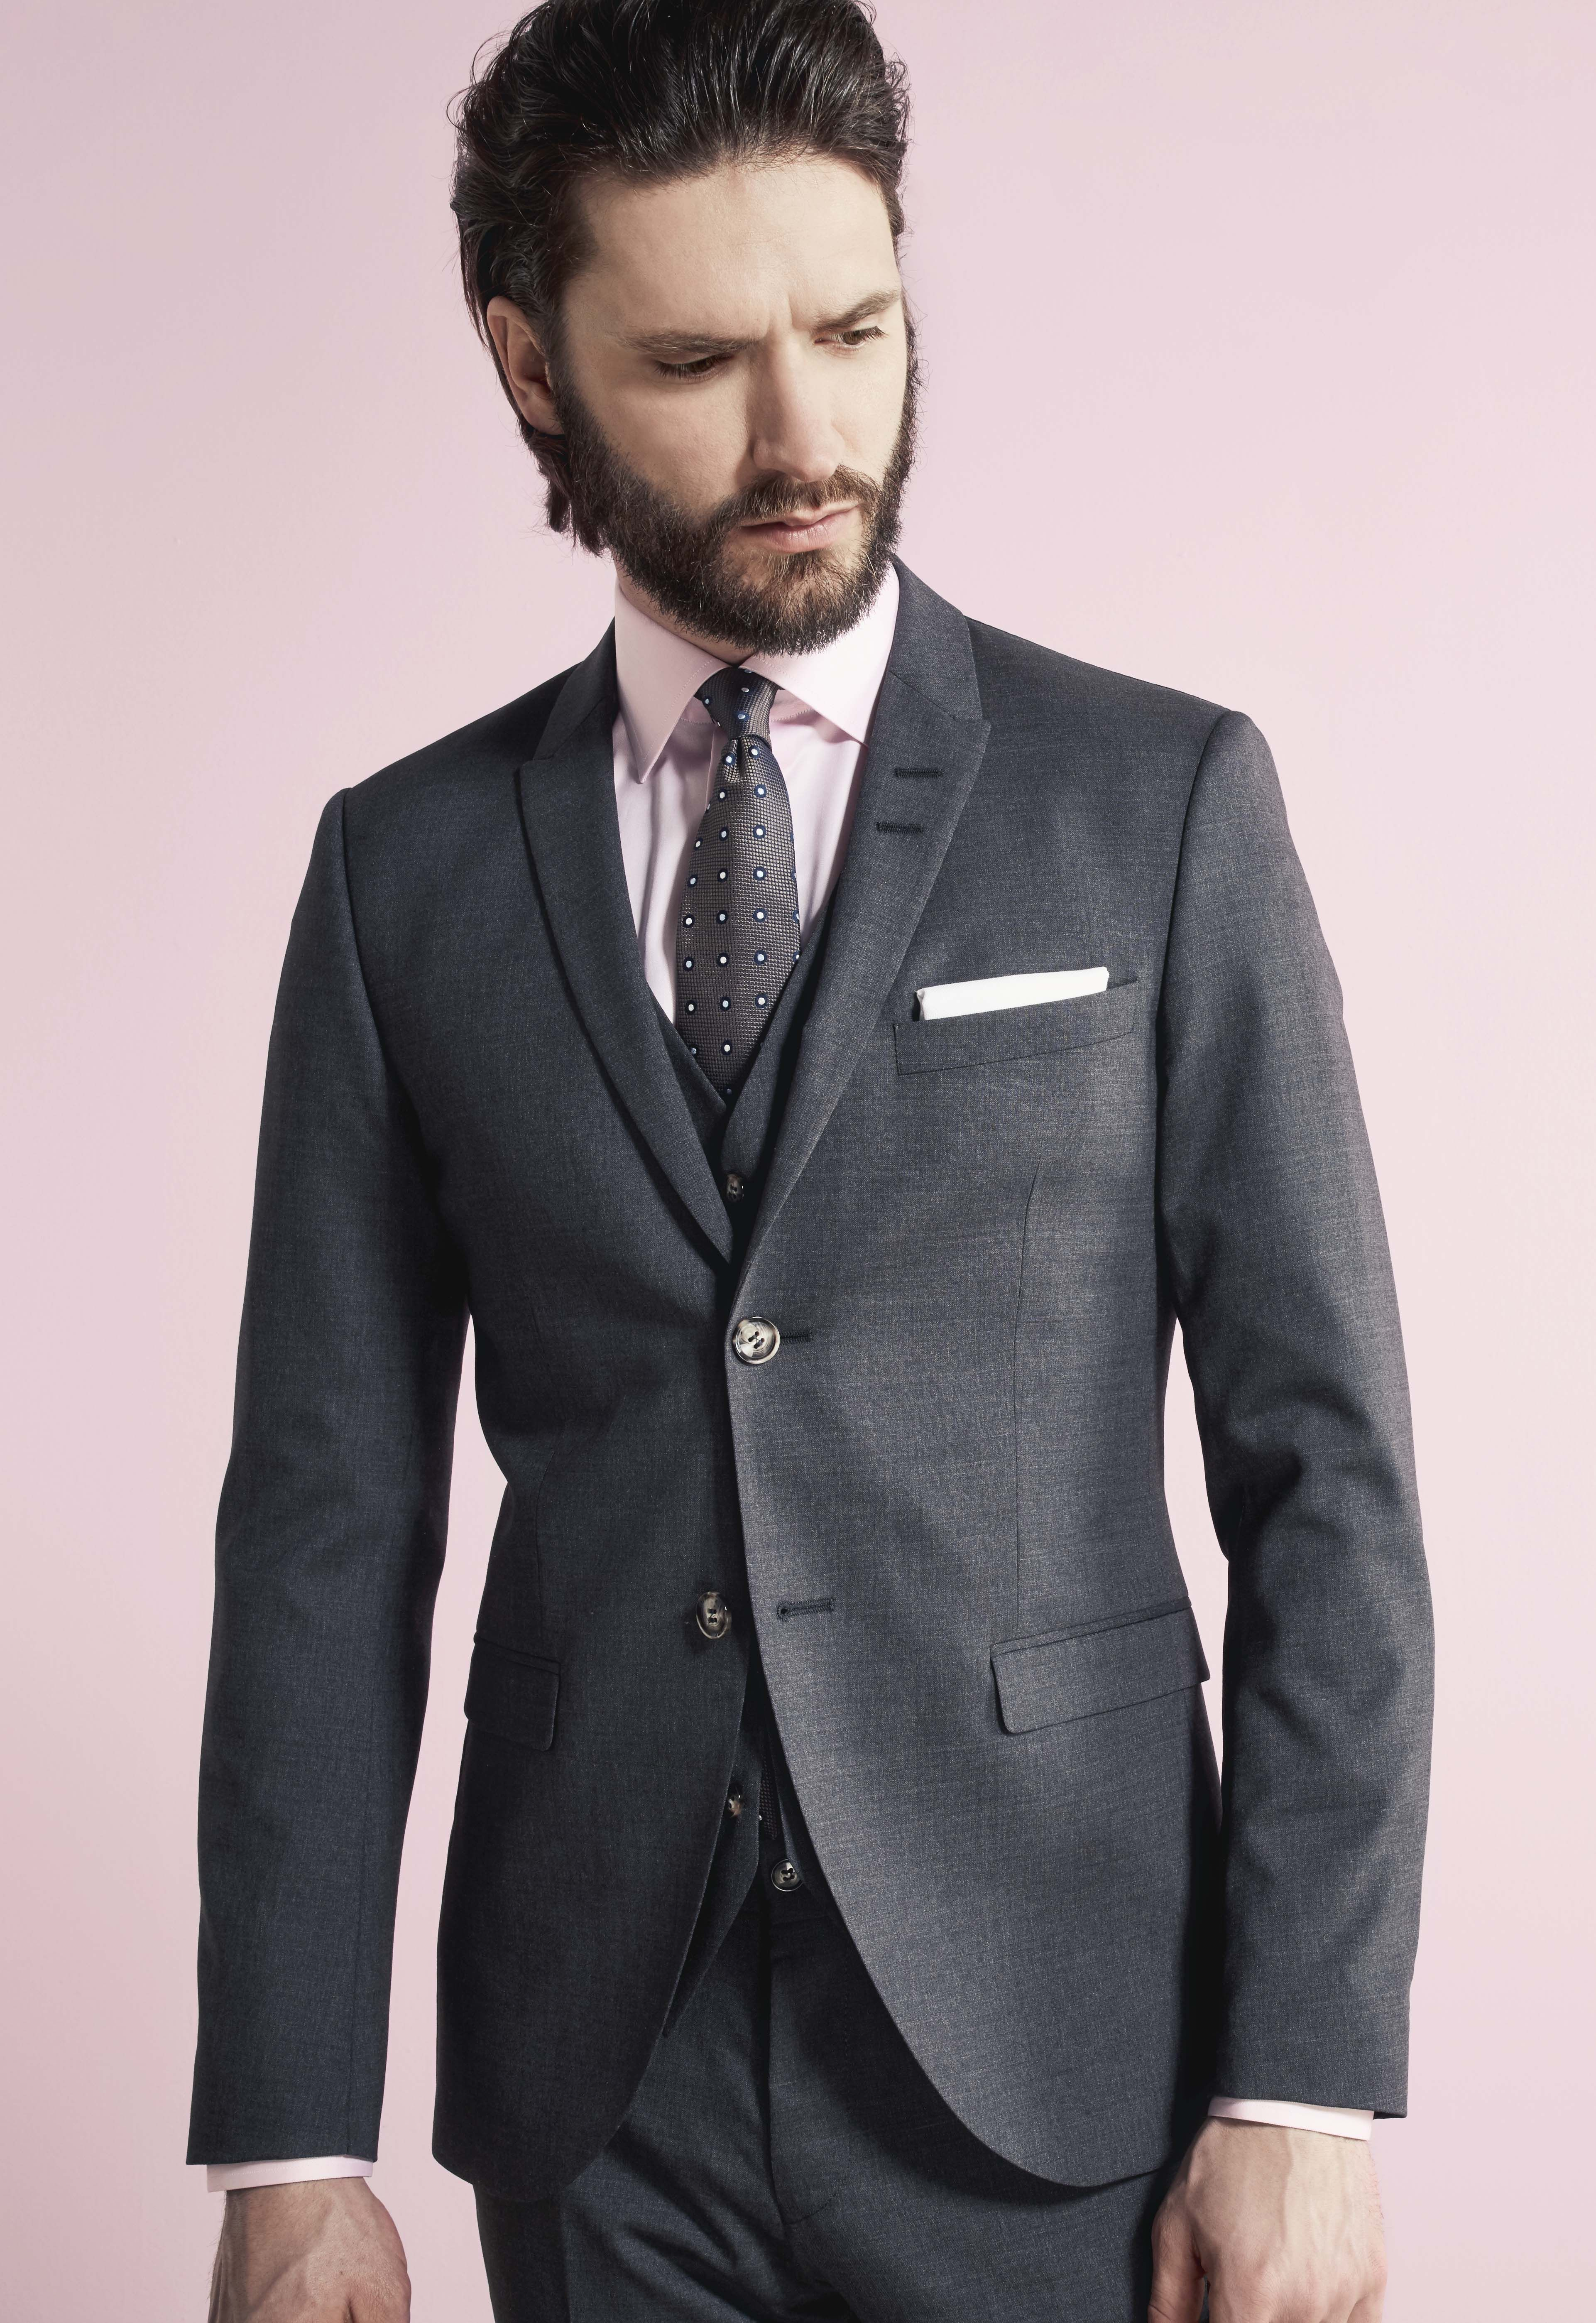 TROELSTRUP SS16. Grey three piece suit from Tiger os Sweden ...